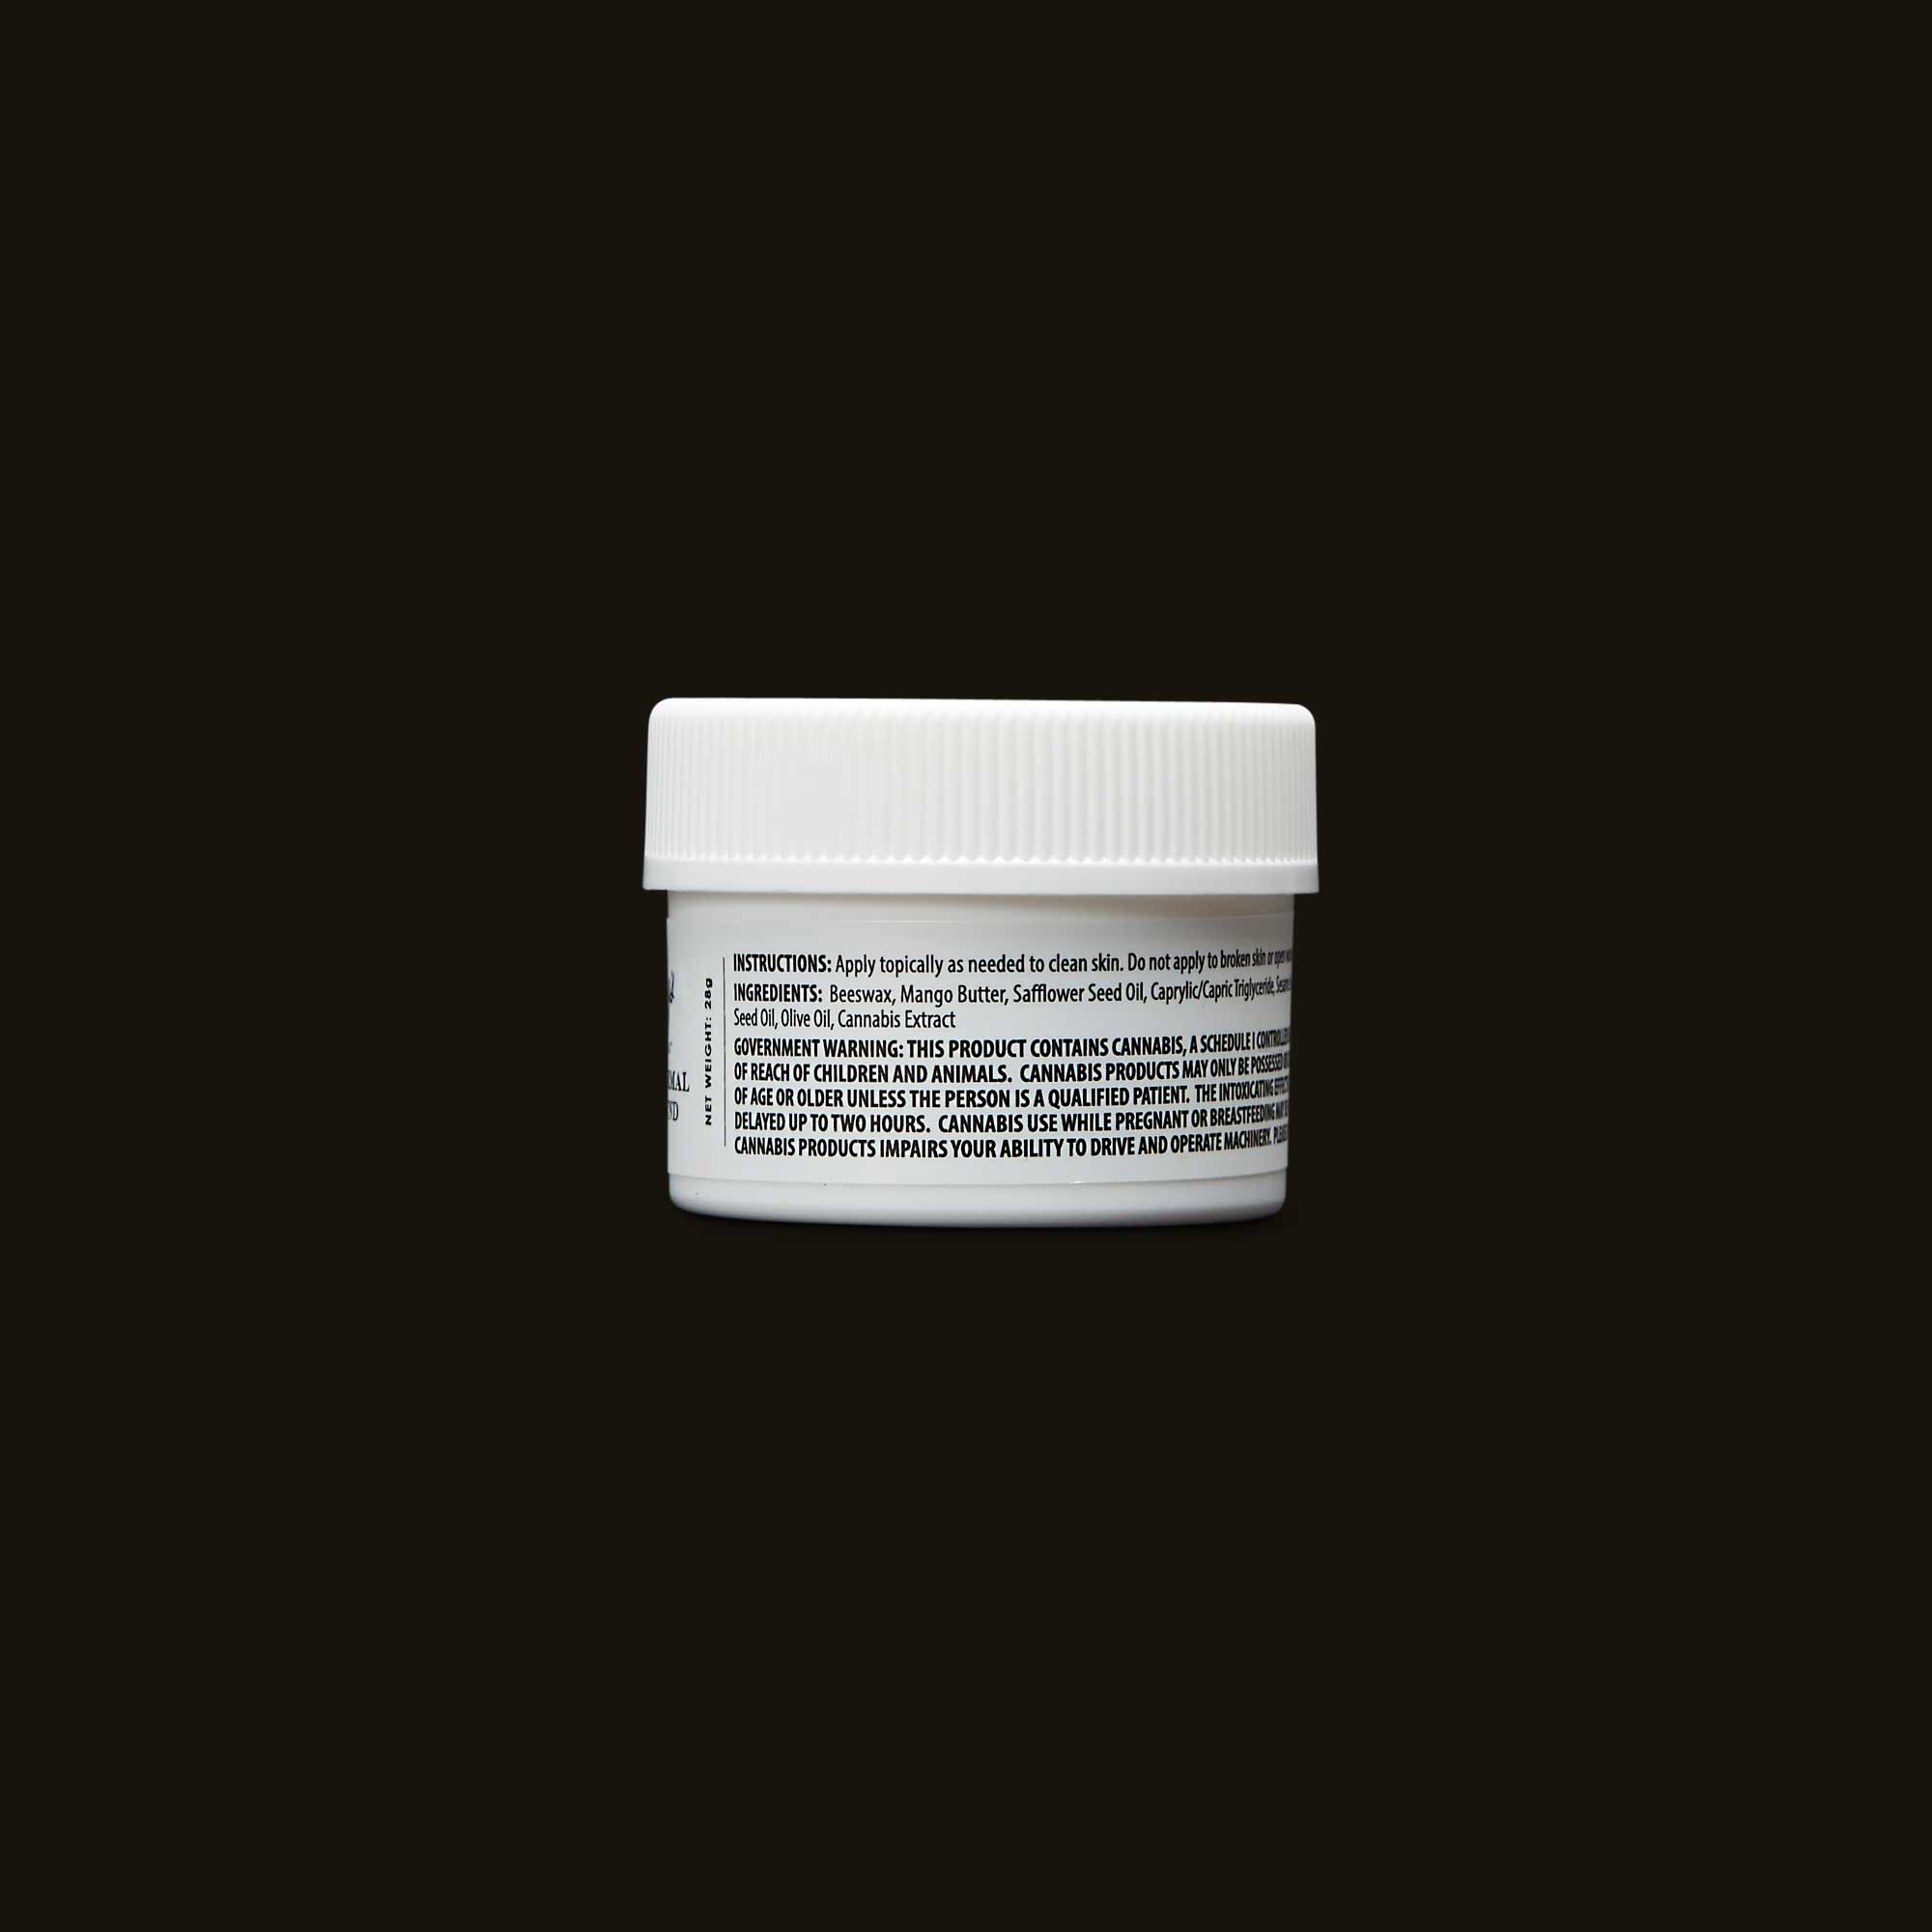 Mary's Medicinals 1:1 Transdermal Compound